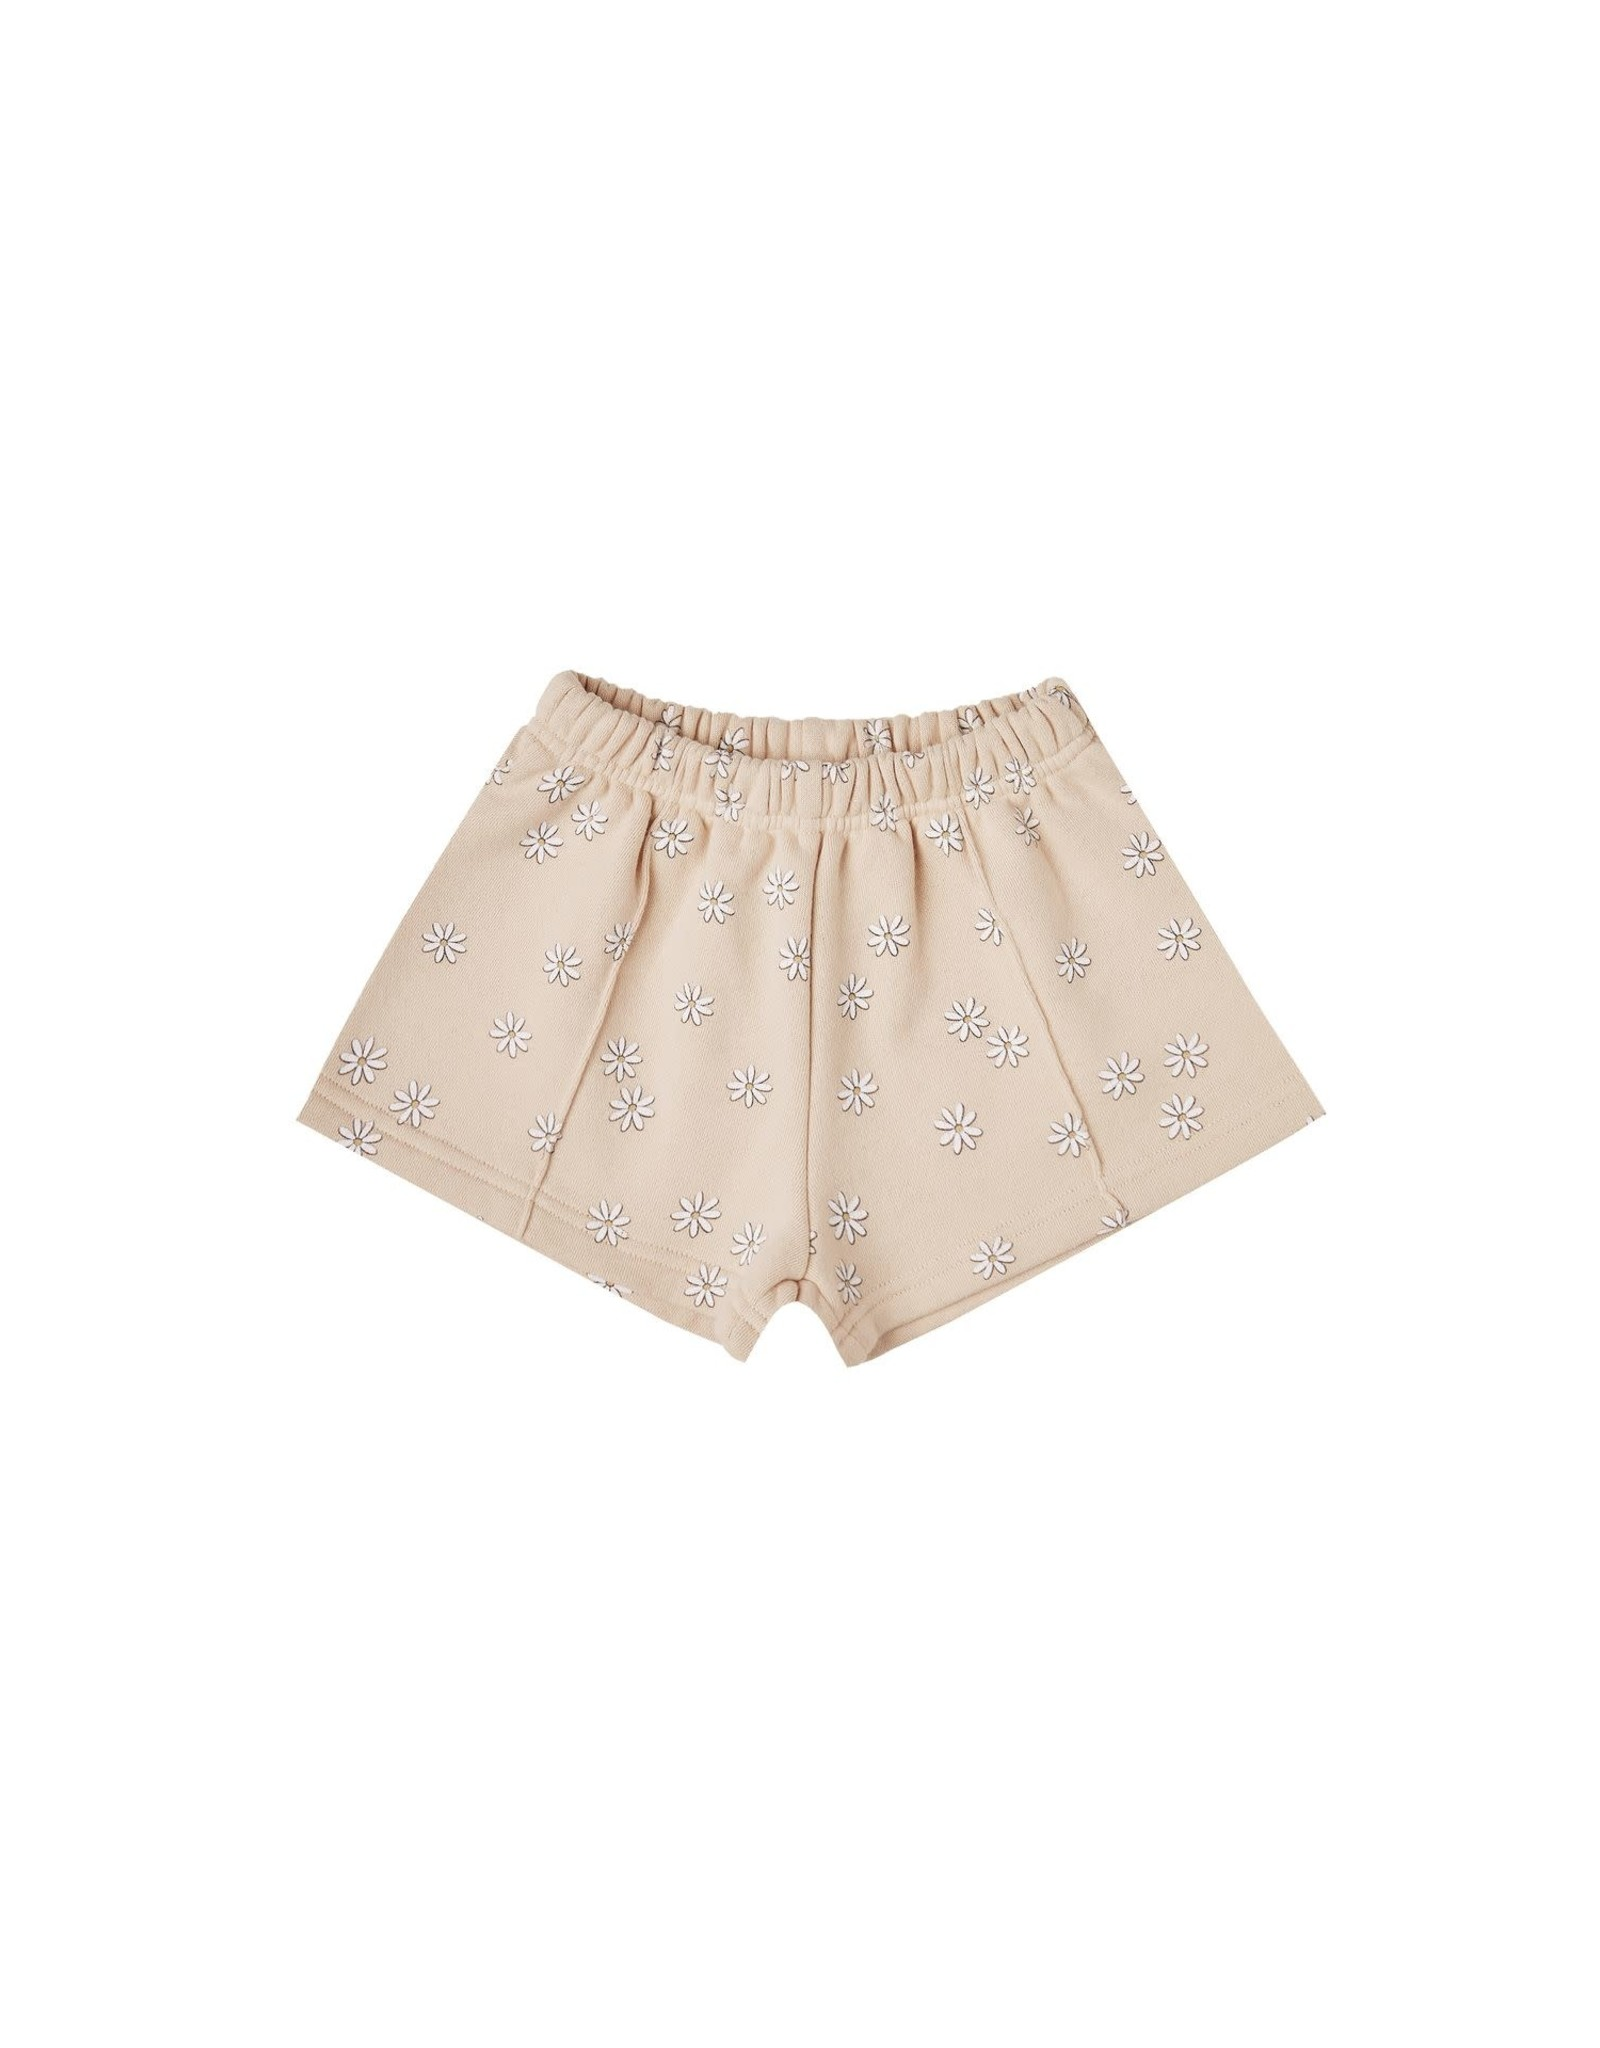 Rylee and Cru daisy confetti track shorts